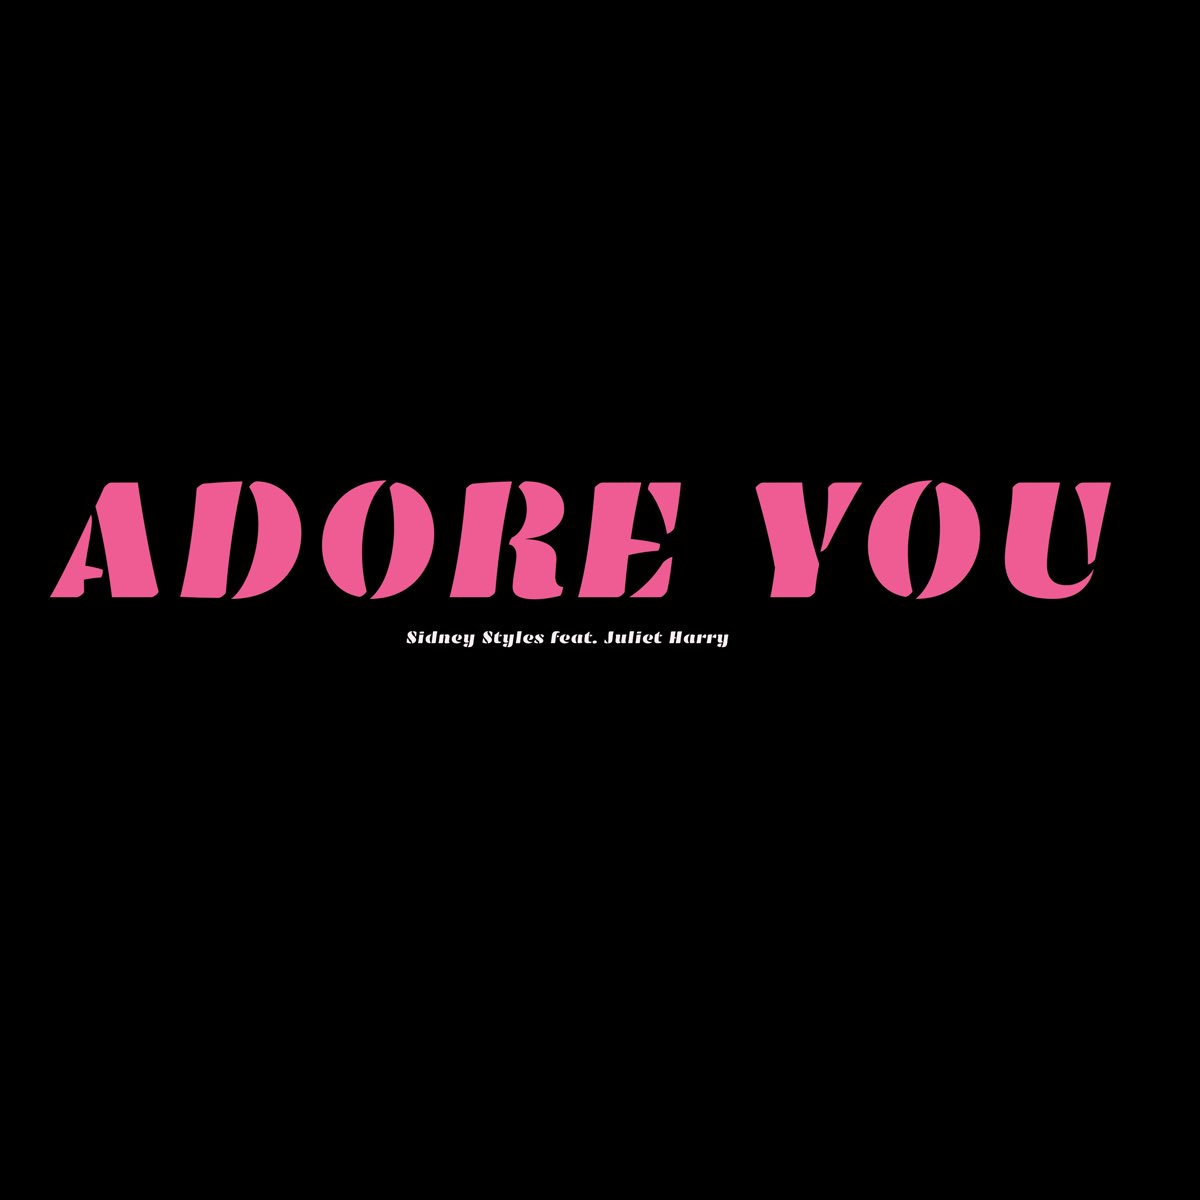 Sidney Styles Adore You Feat Juliet Harry Single By Sidney Styles Album Artwork Cover My Tunes